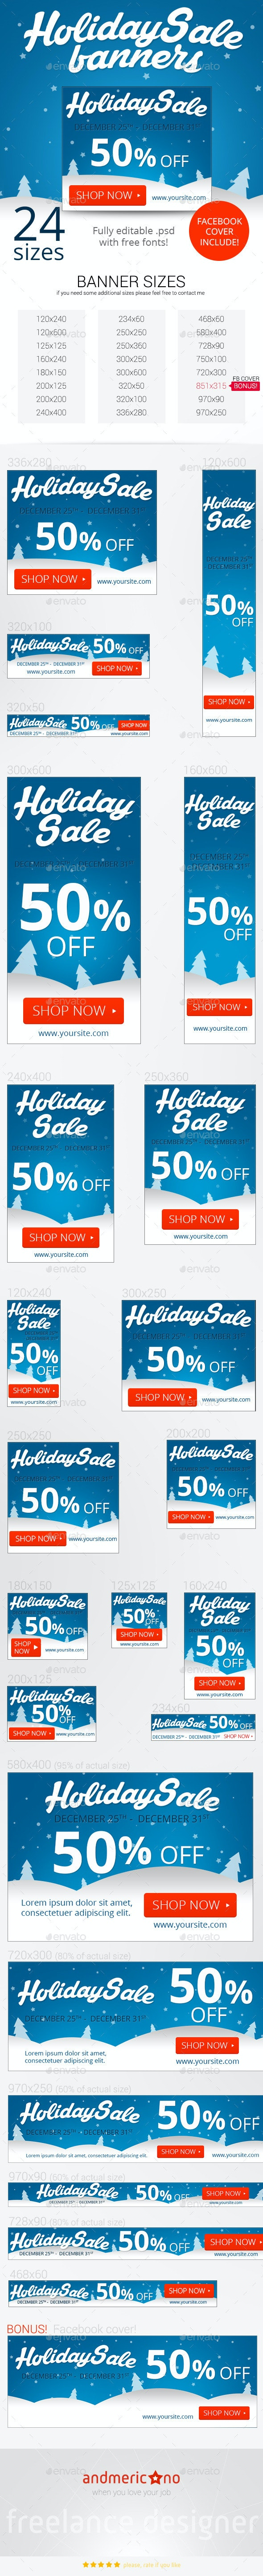 Holiday Sale Banners - Banners & Ads Web Elements